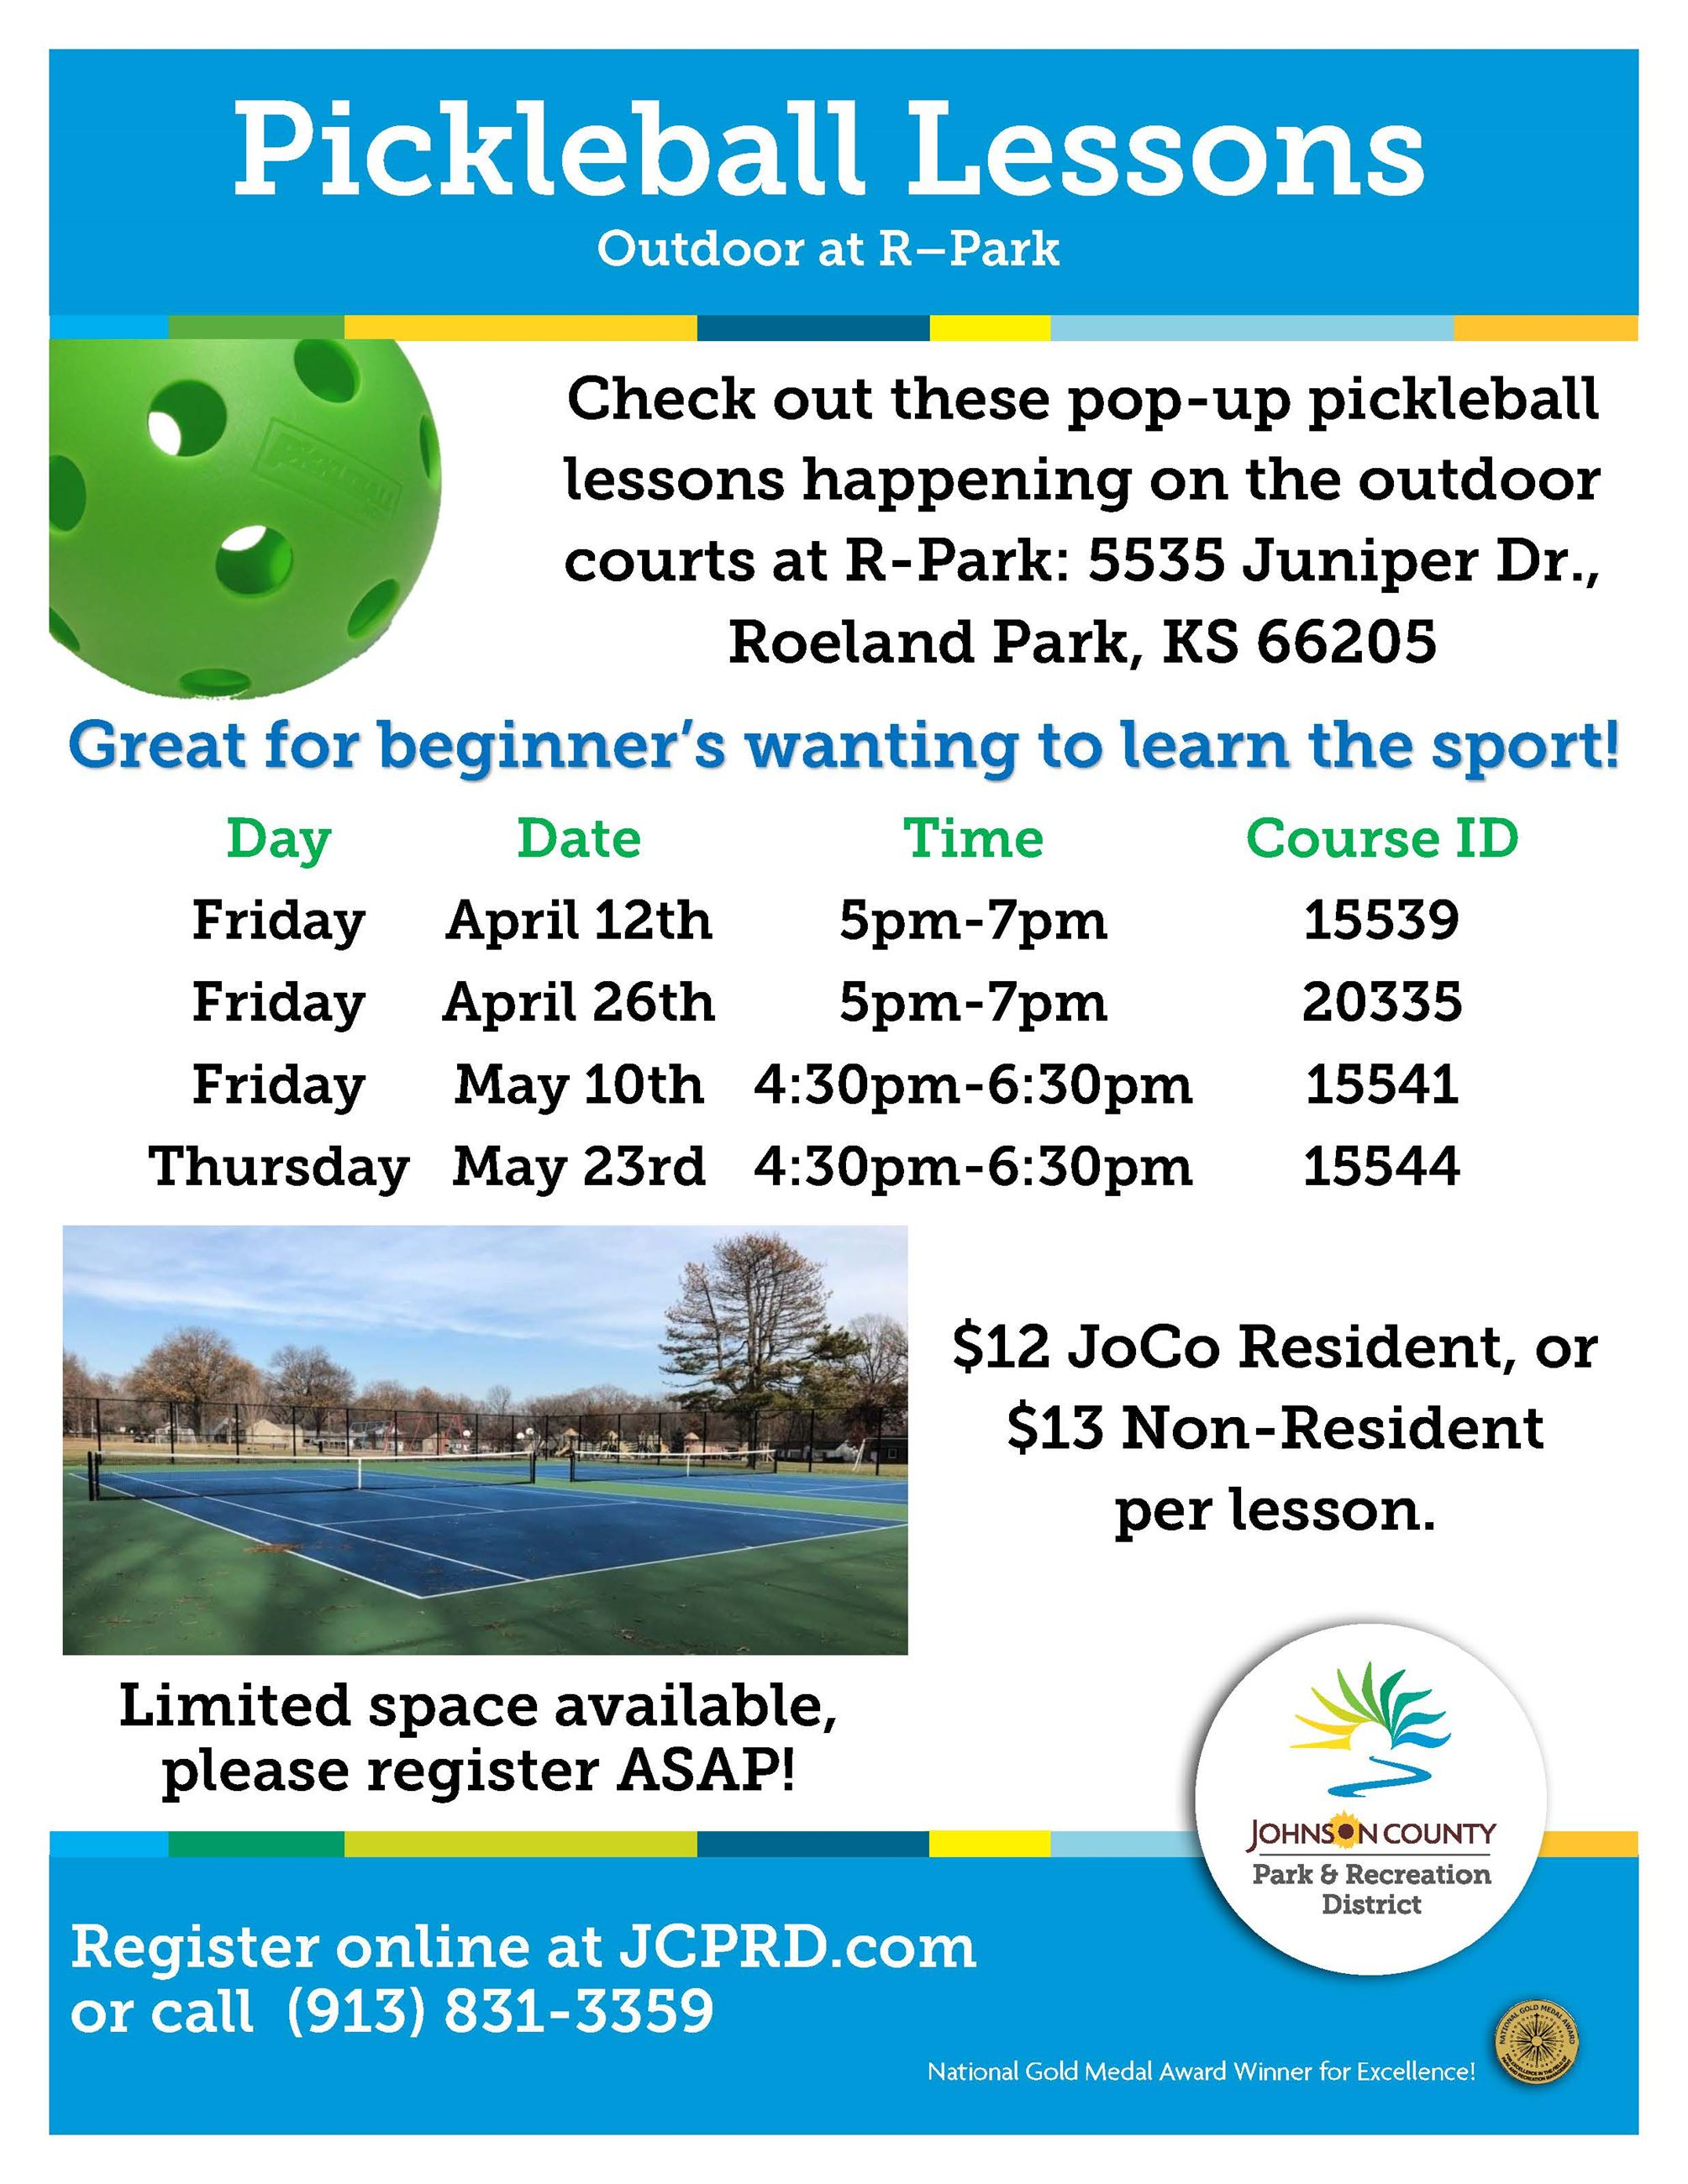 pop-up pickleball lessons at R Park